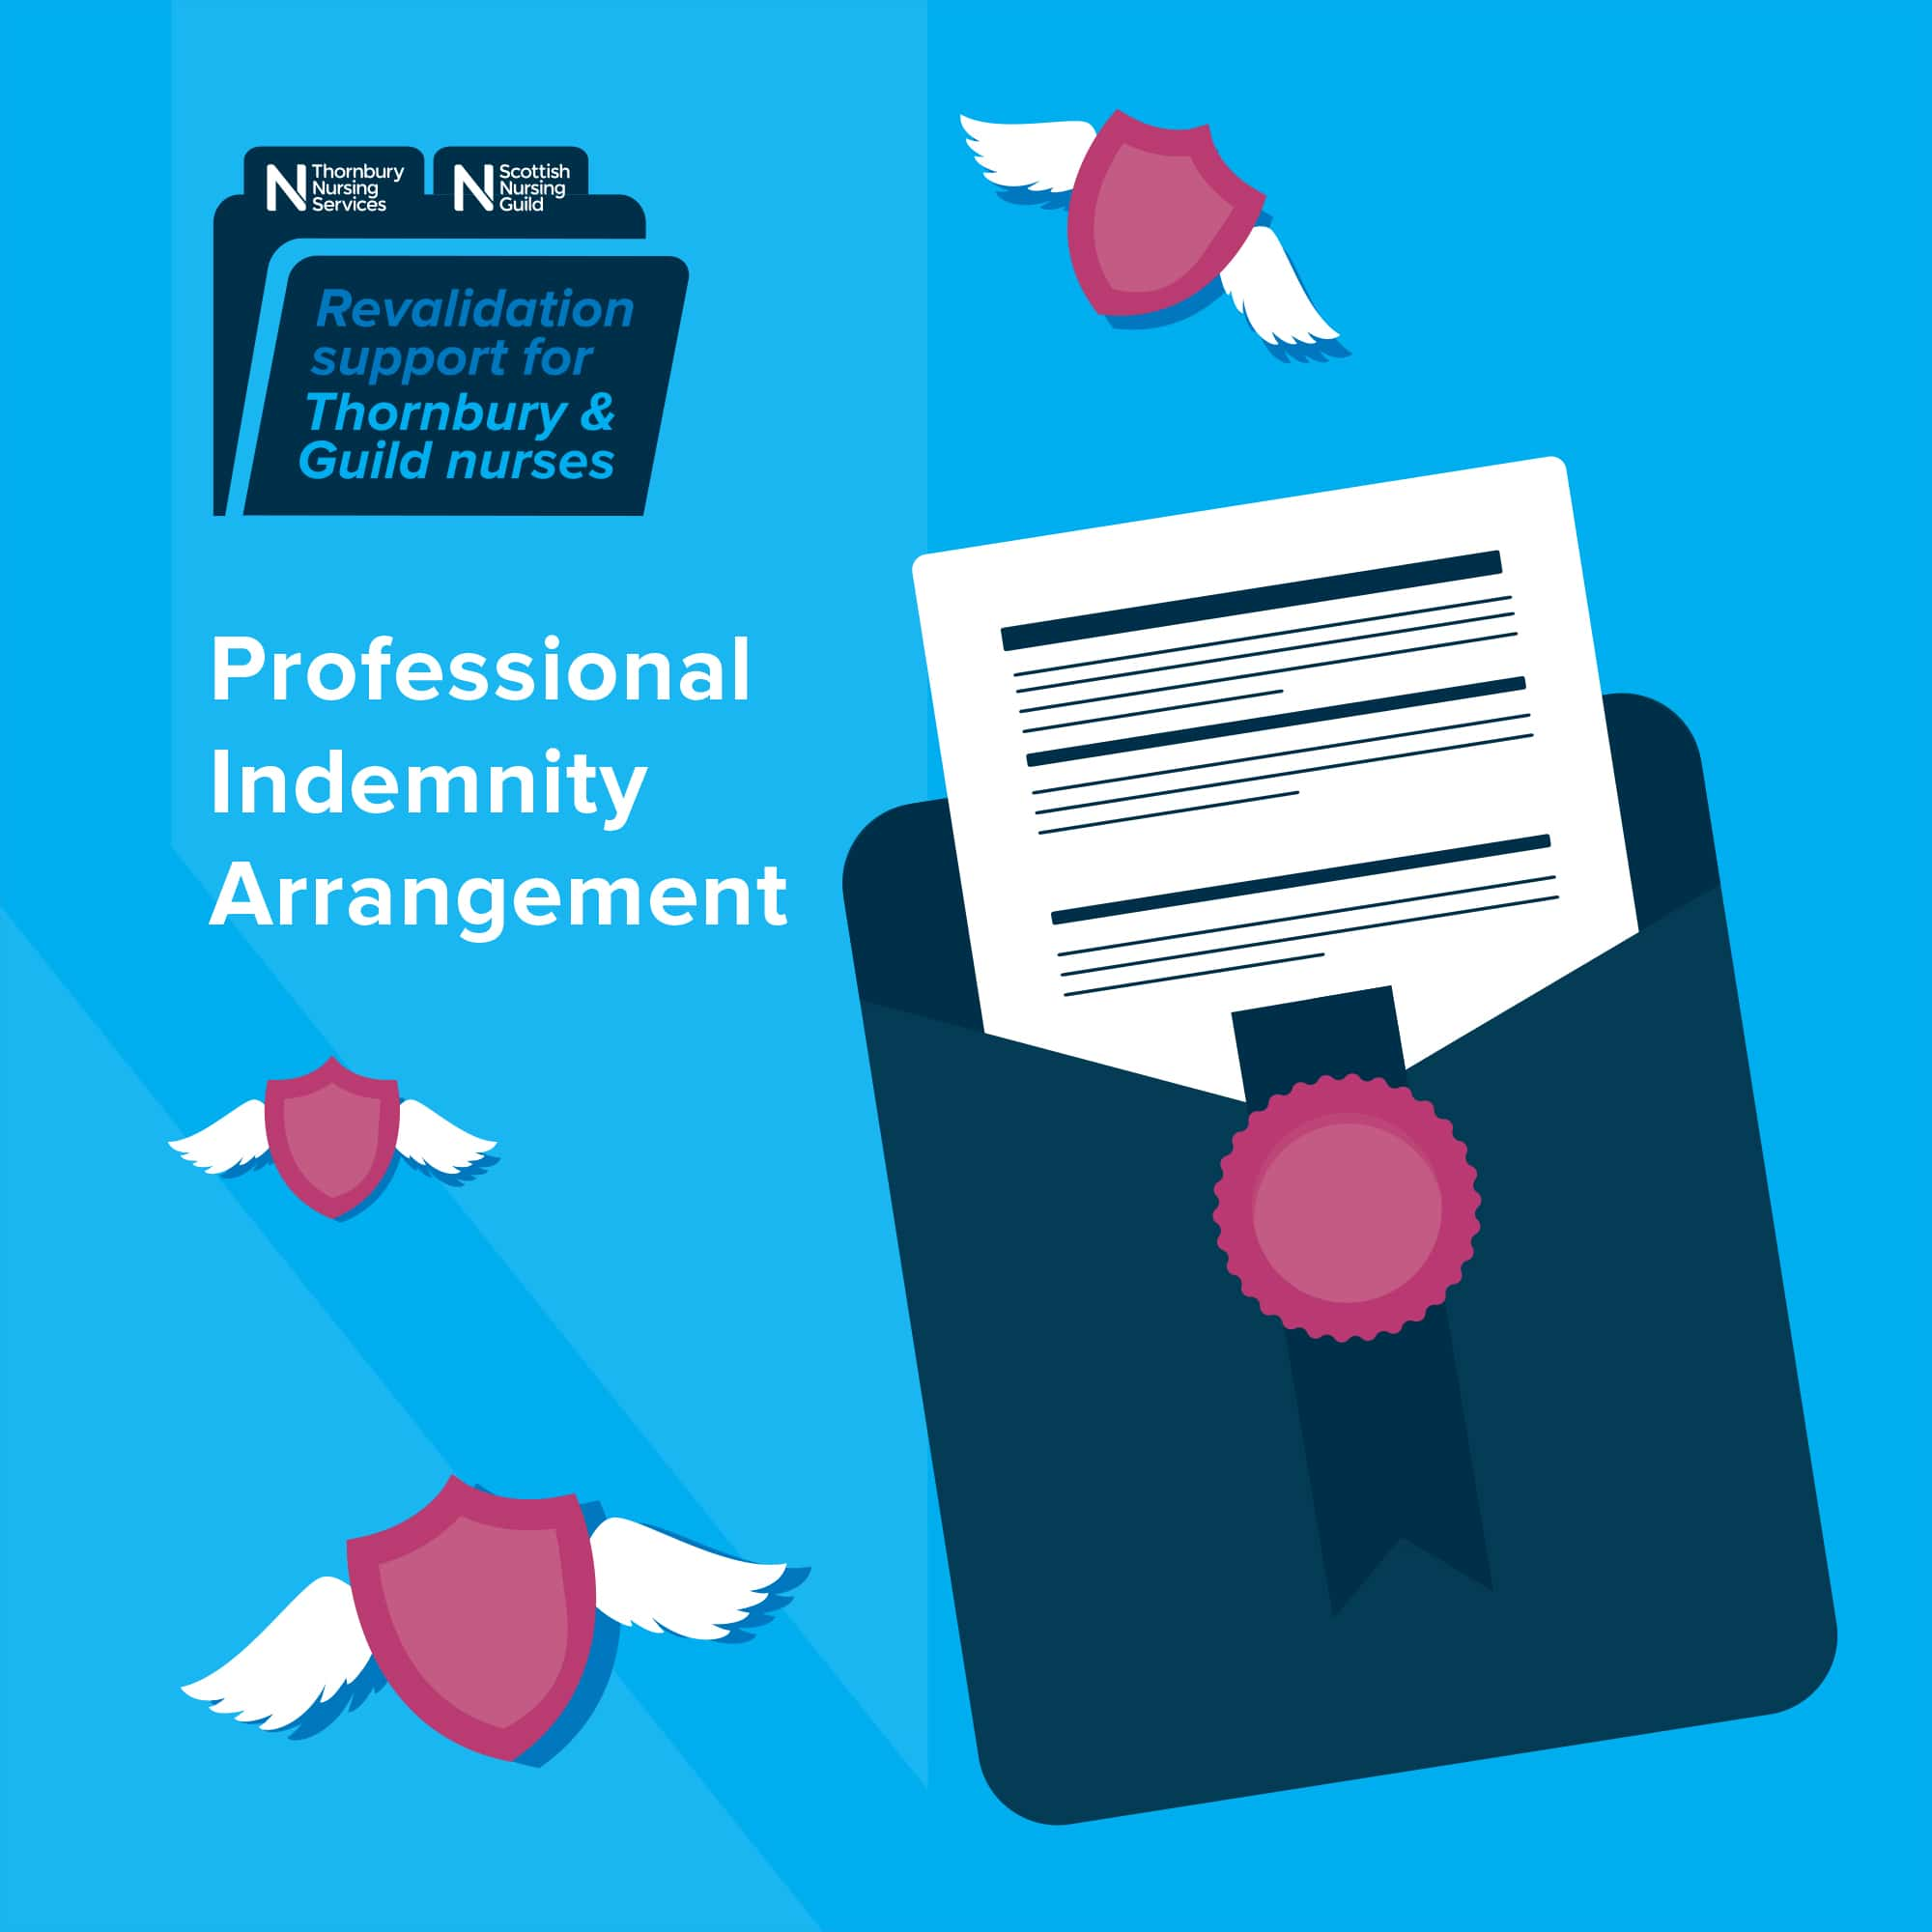 Professional Indemnity - revalidation support